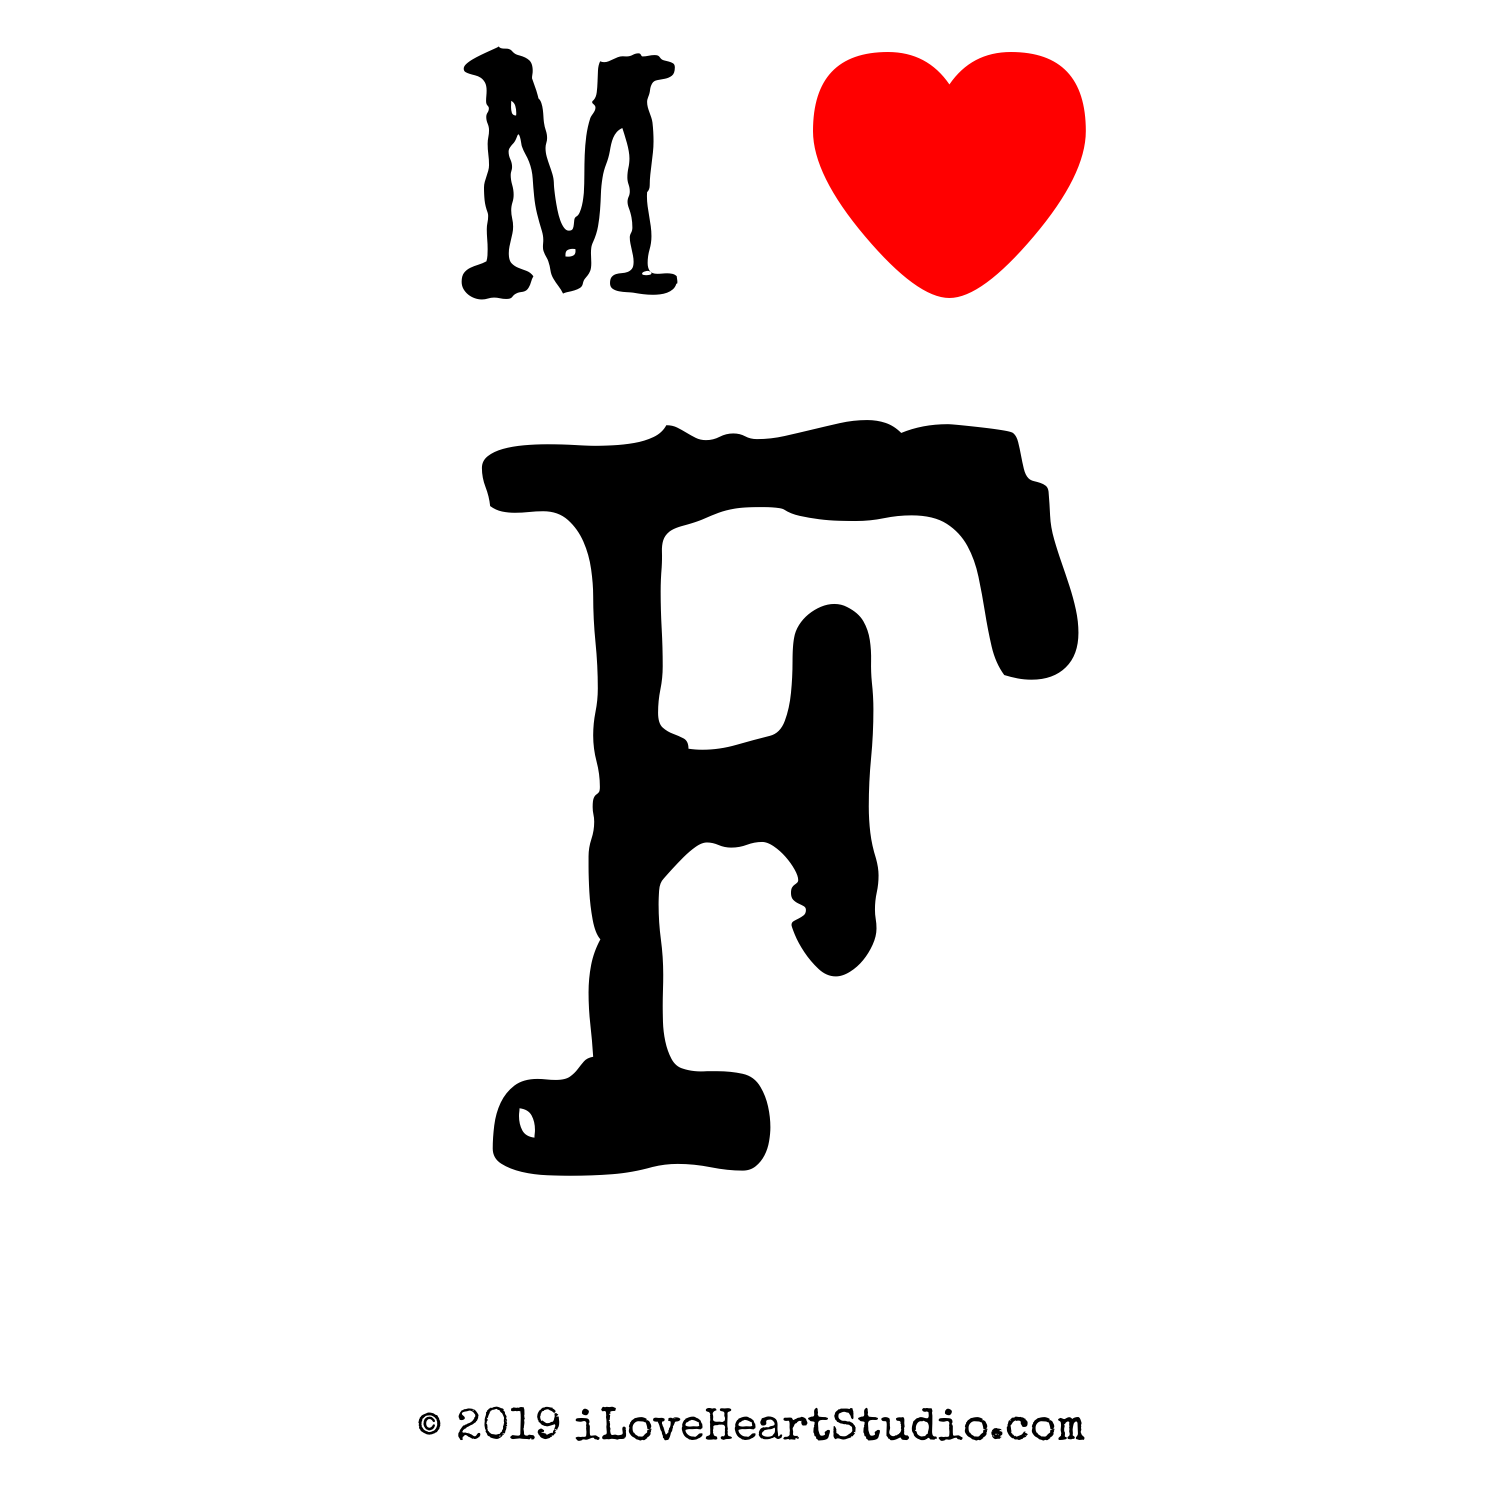 M love heart f design on t shirt poster mug and many other m love heart f thecheapjerseys Choice Image